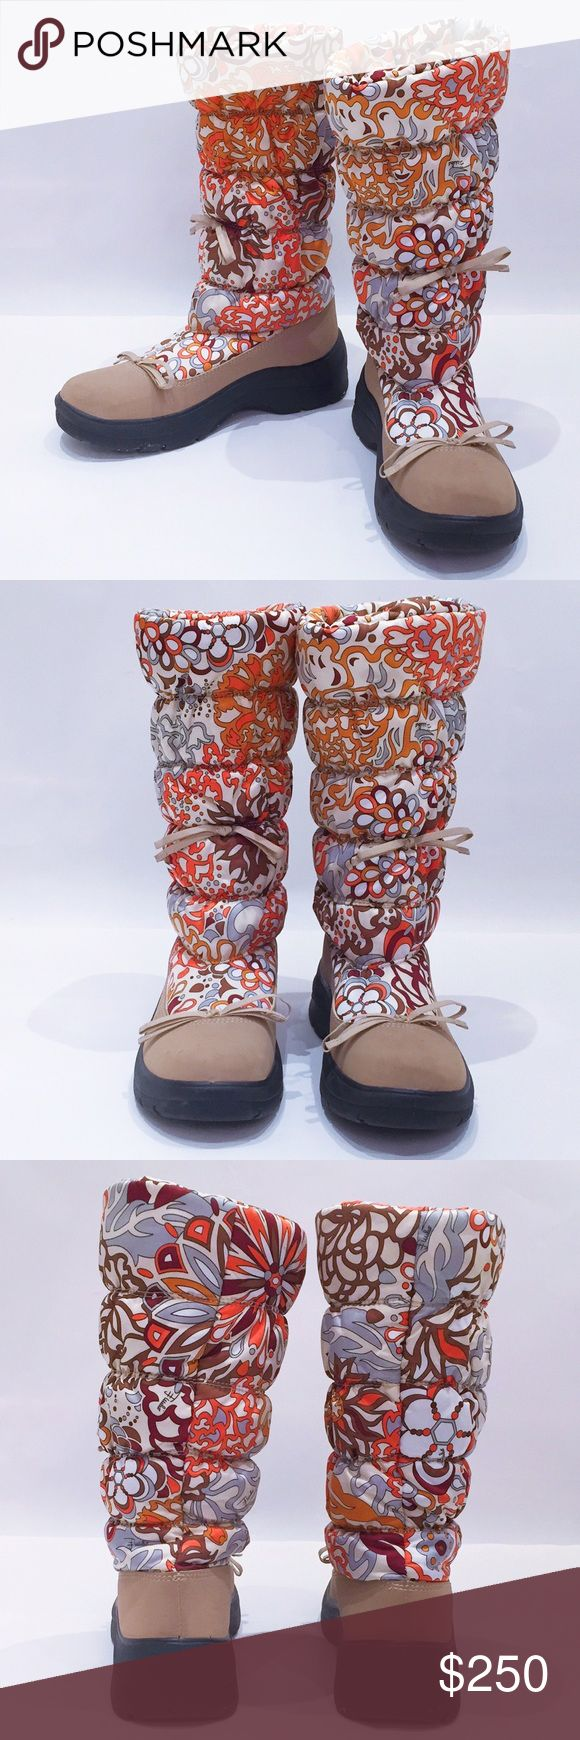 Emilio Pucci Snow/Rain Boots Pucci nylon boots. Perfect for cold and rainy weather. Tan and pastels make these boots stand out among other drab snow boots. Emilio Pucci Shoes Winter & Rain Boots